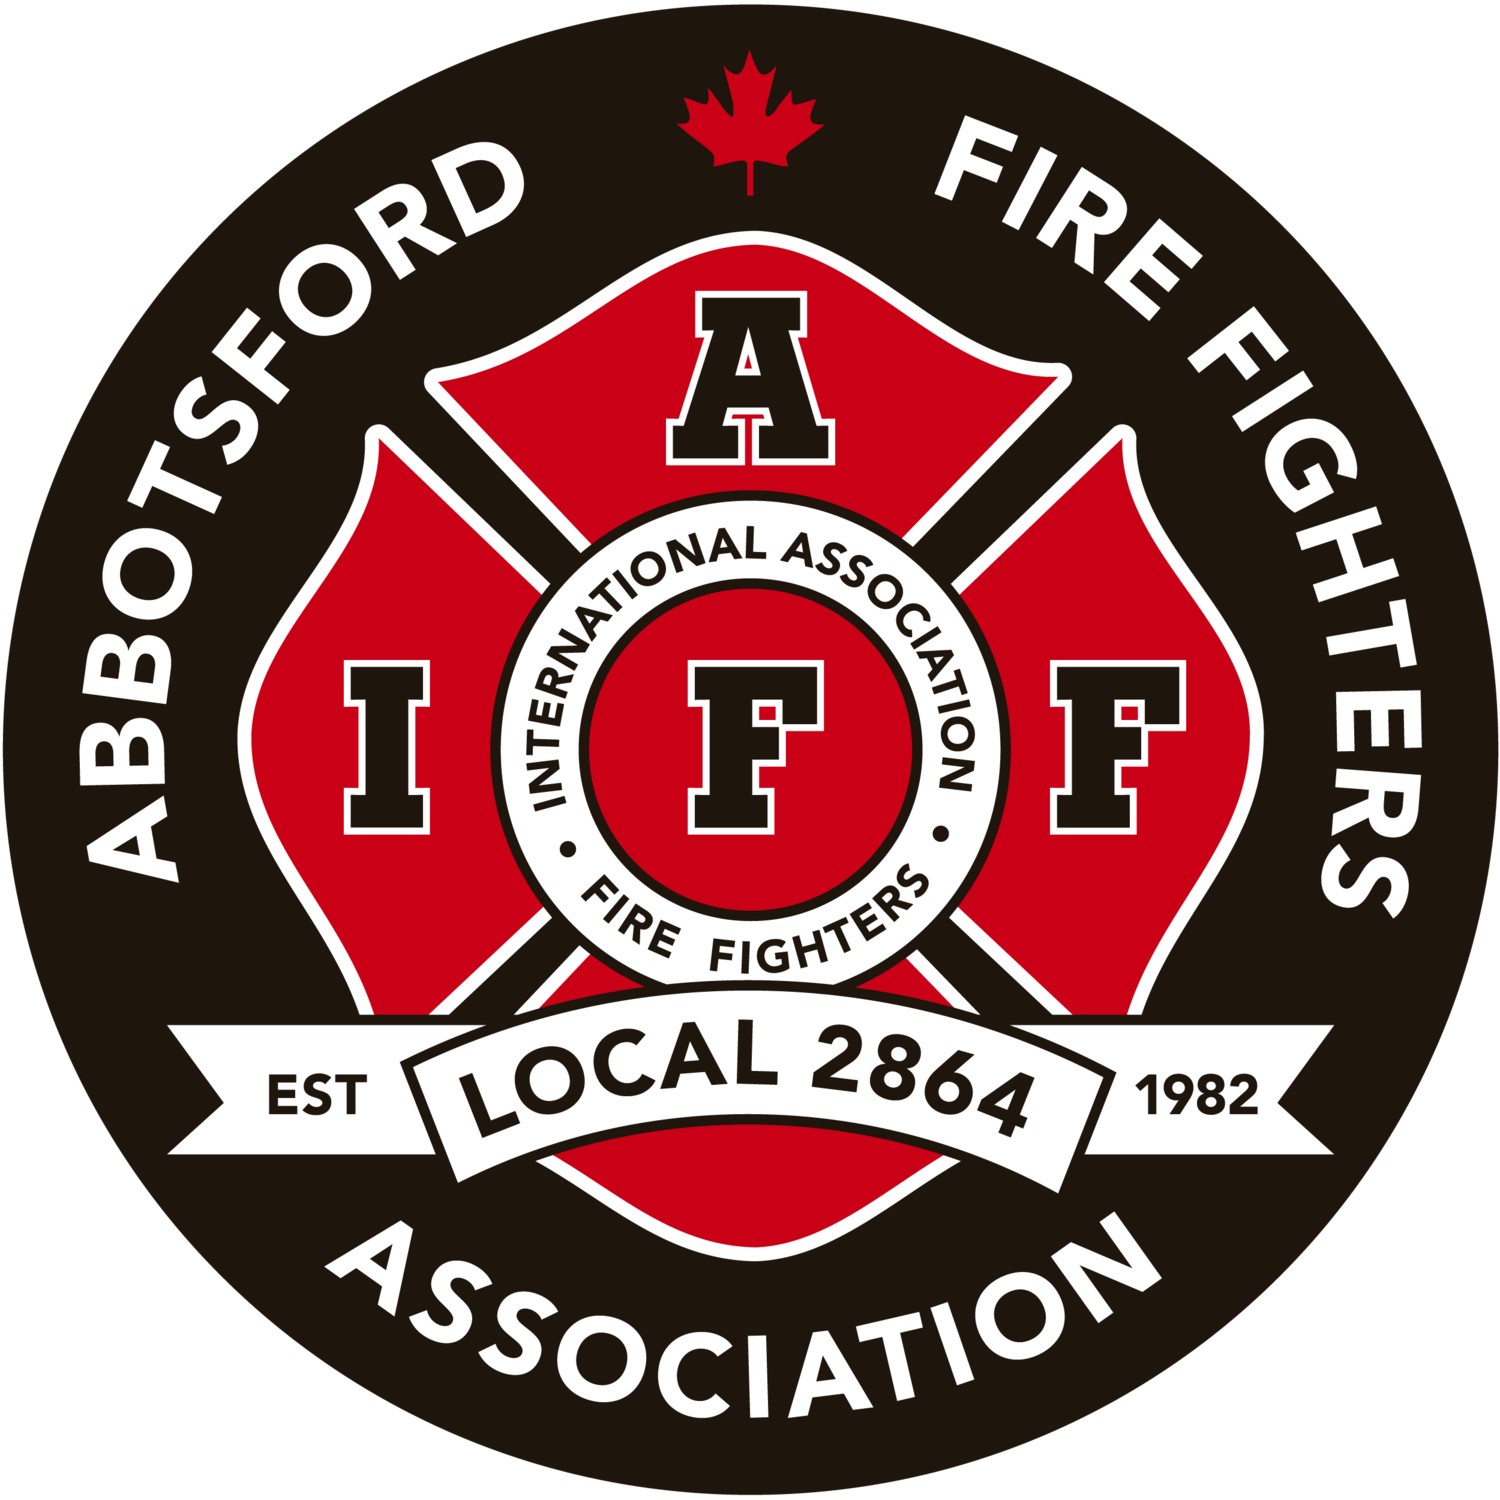 Abbotsford Fire Fighters Association 2864 | Abbotsford Fire Fighters Charitable Society | Abbotsford BC